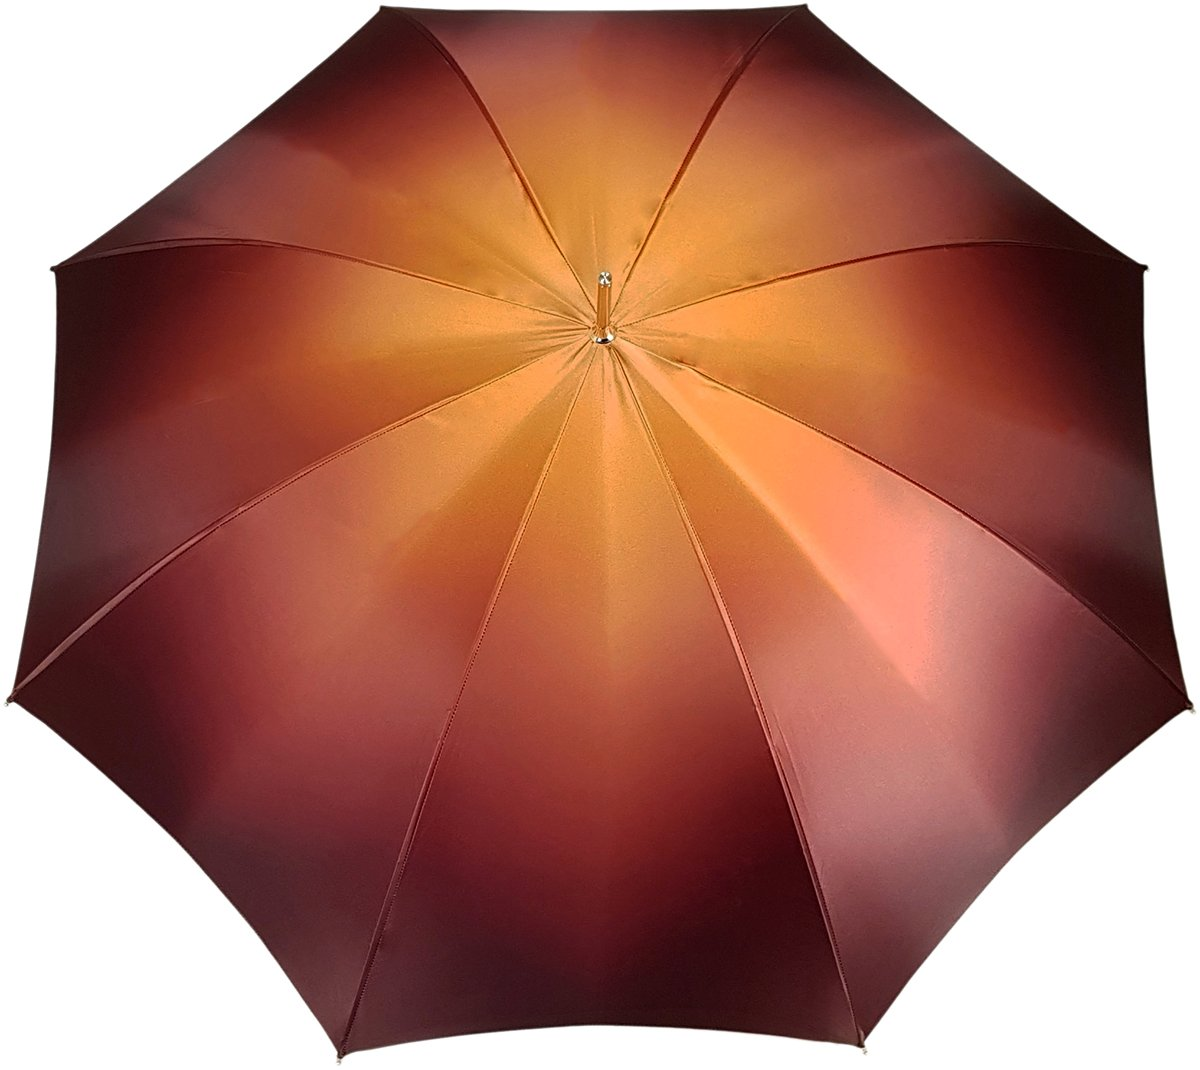 Charming Double Cloth Woman's Umbrella Exclusive Design by il Marchesato